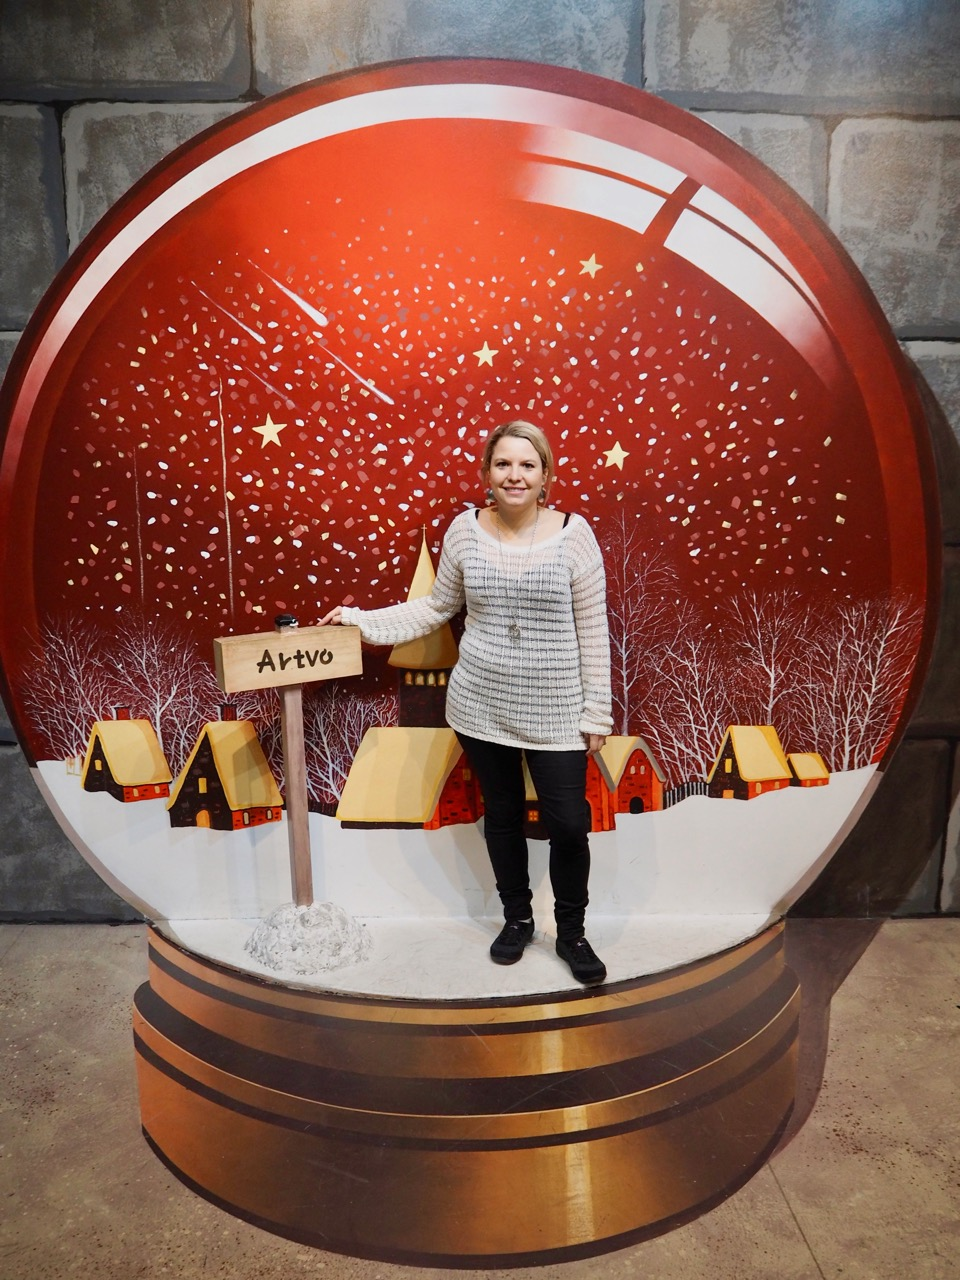 A Fun Afternoon at Artvo: Melbourne's Immersive and Trick Art Gallery - Free Two Roam